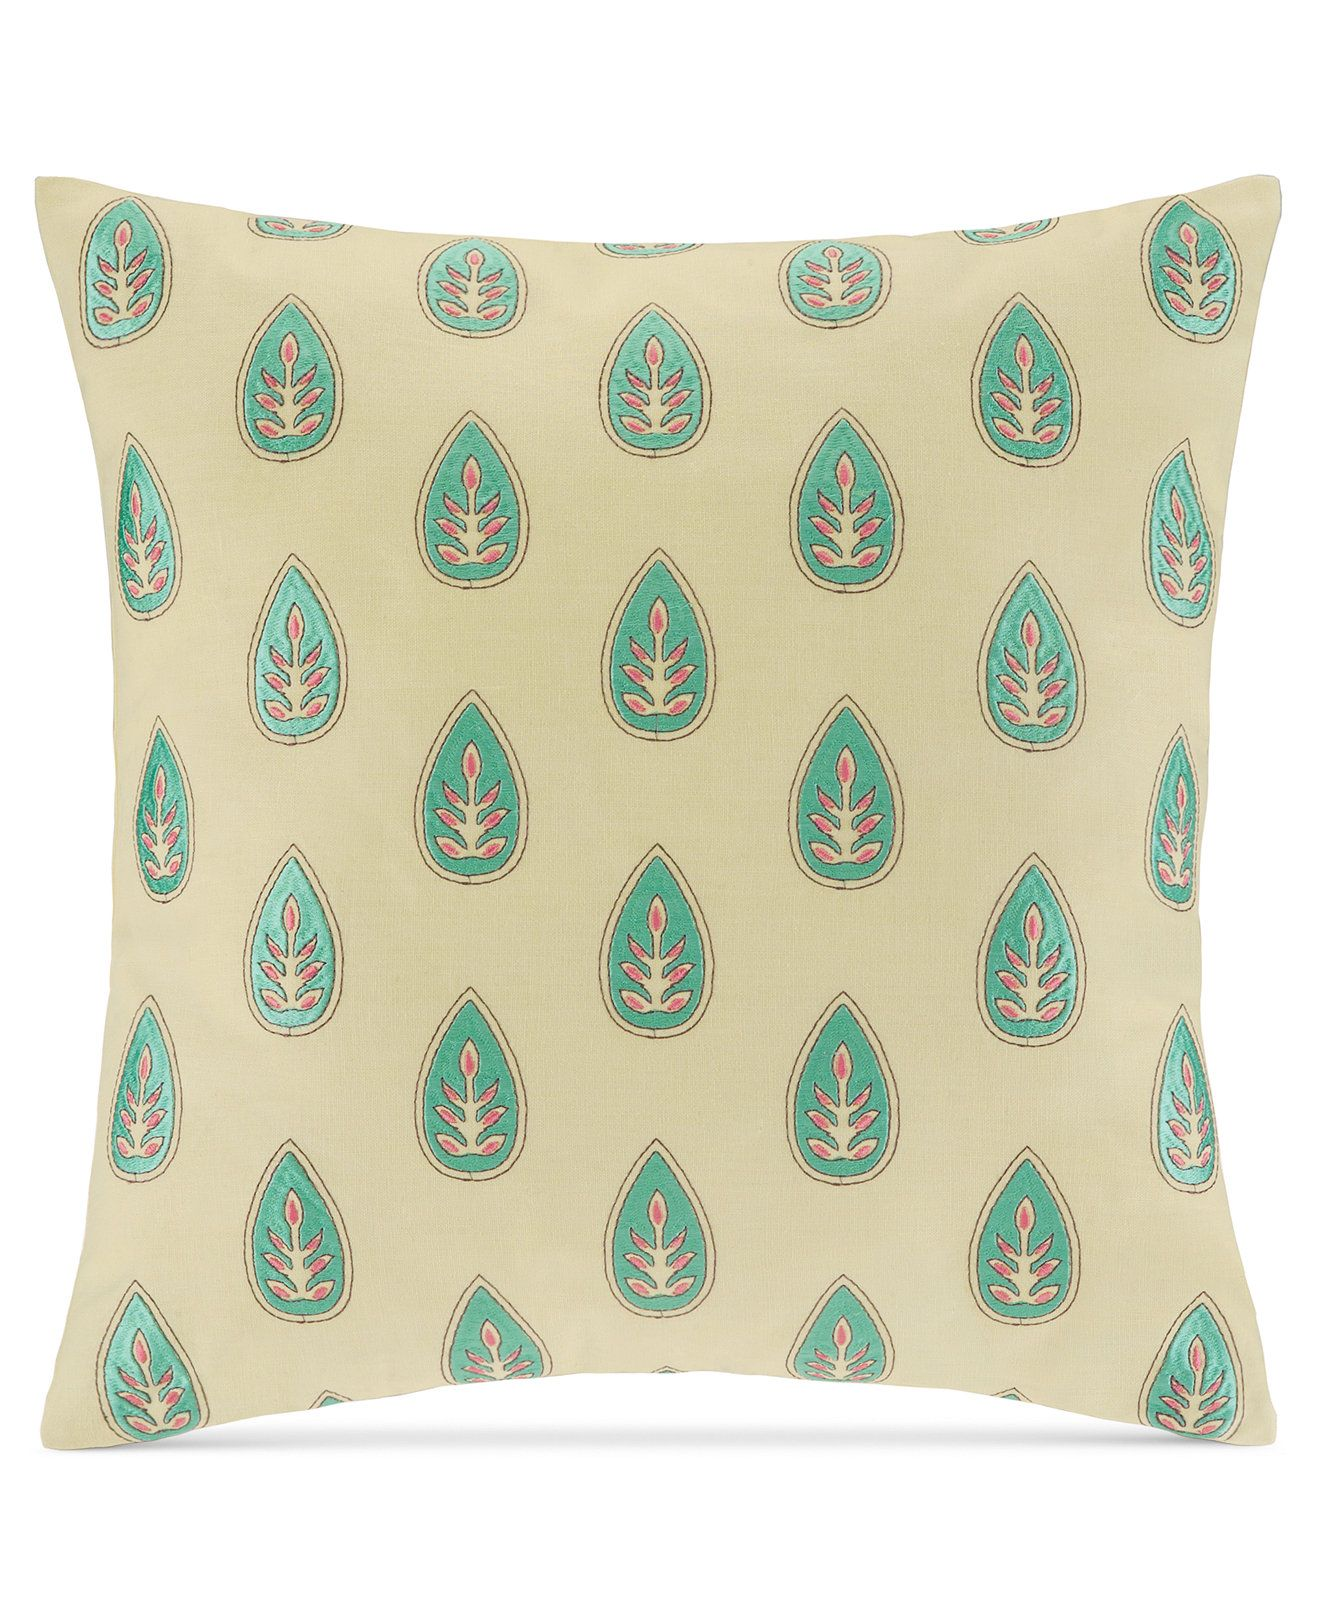 "Macy's Decorative Pillows Alluring Echo Guinevere 18"" Square Decorative Pillow  Bedding Collections 2018"